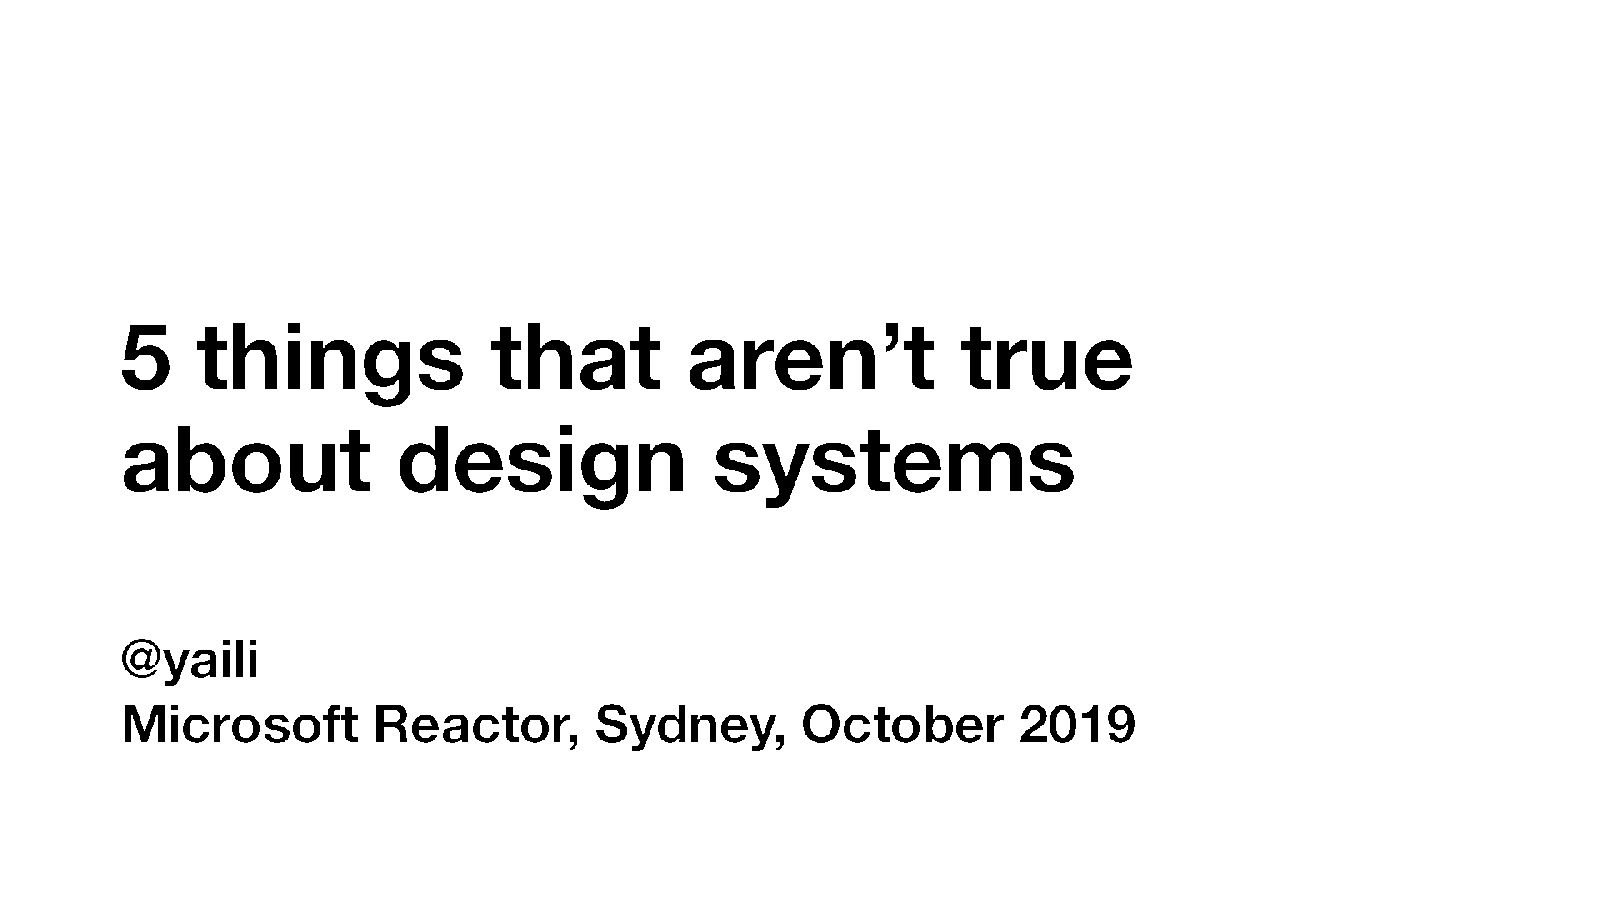 5 things that aren't true about design systems